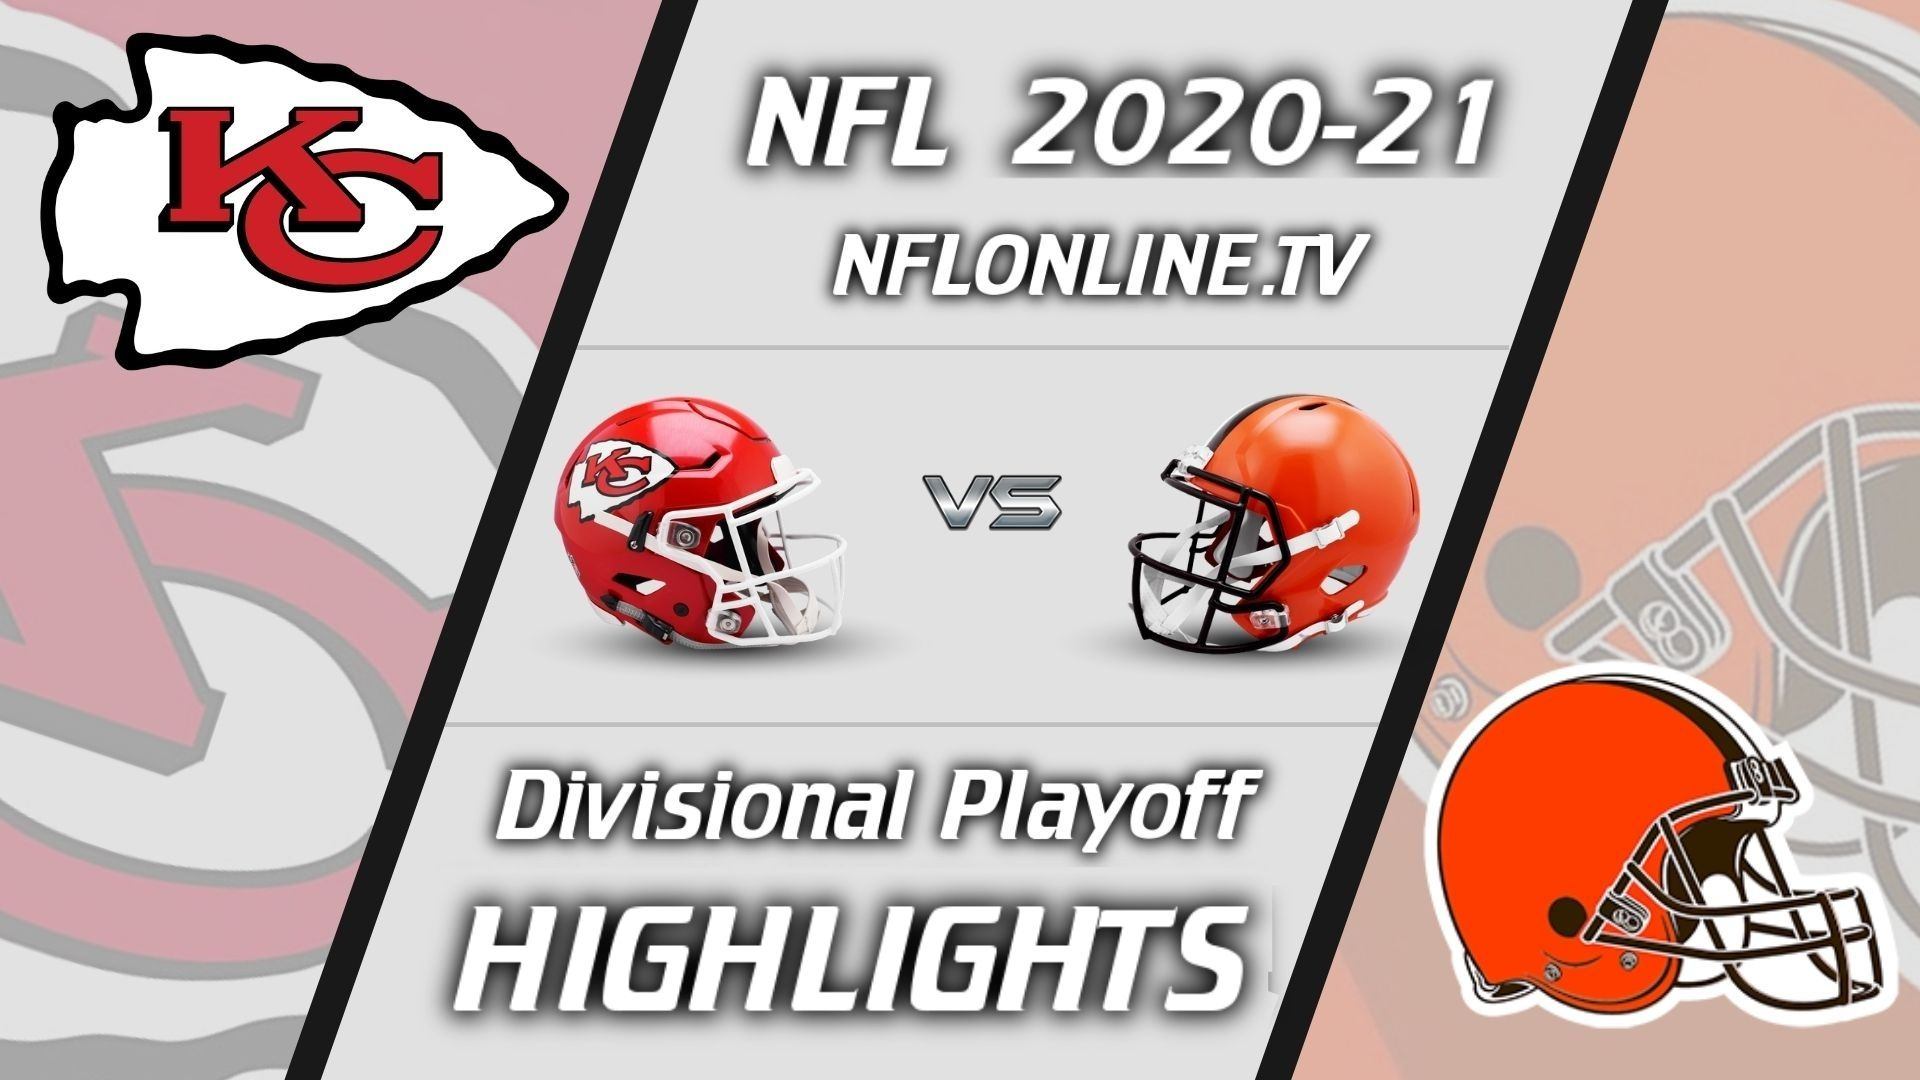 Chiefs Vs Browns Highlights 2021 NFL Divisional Playoff